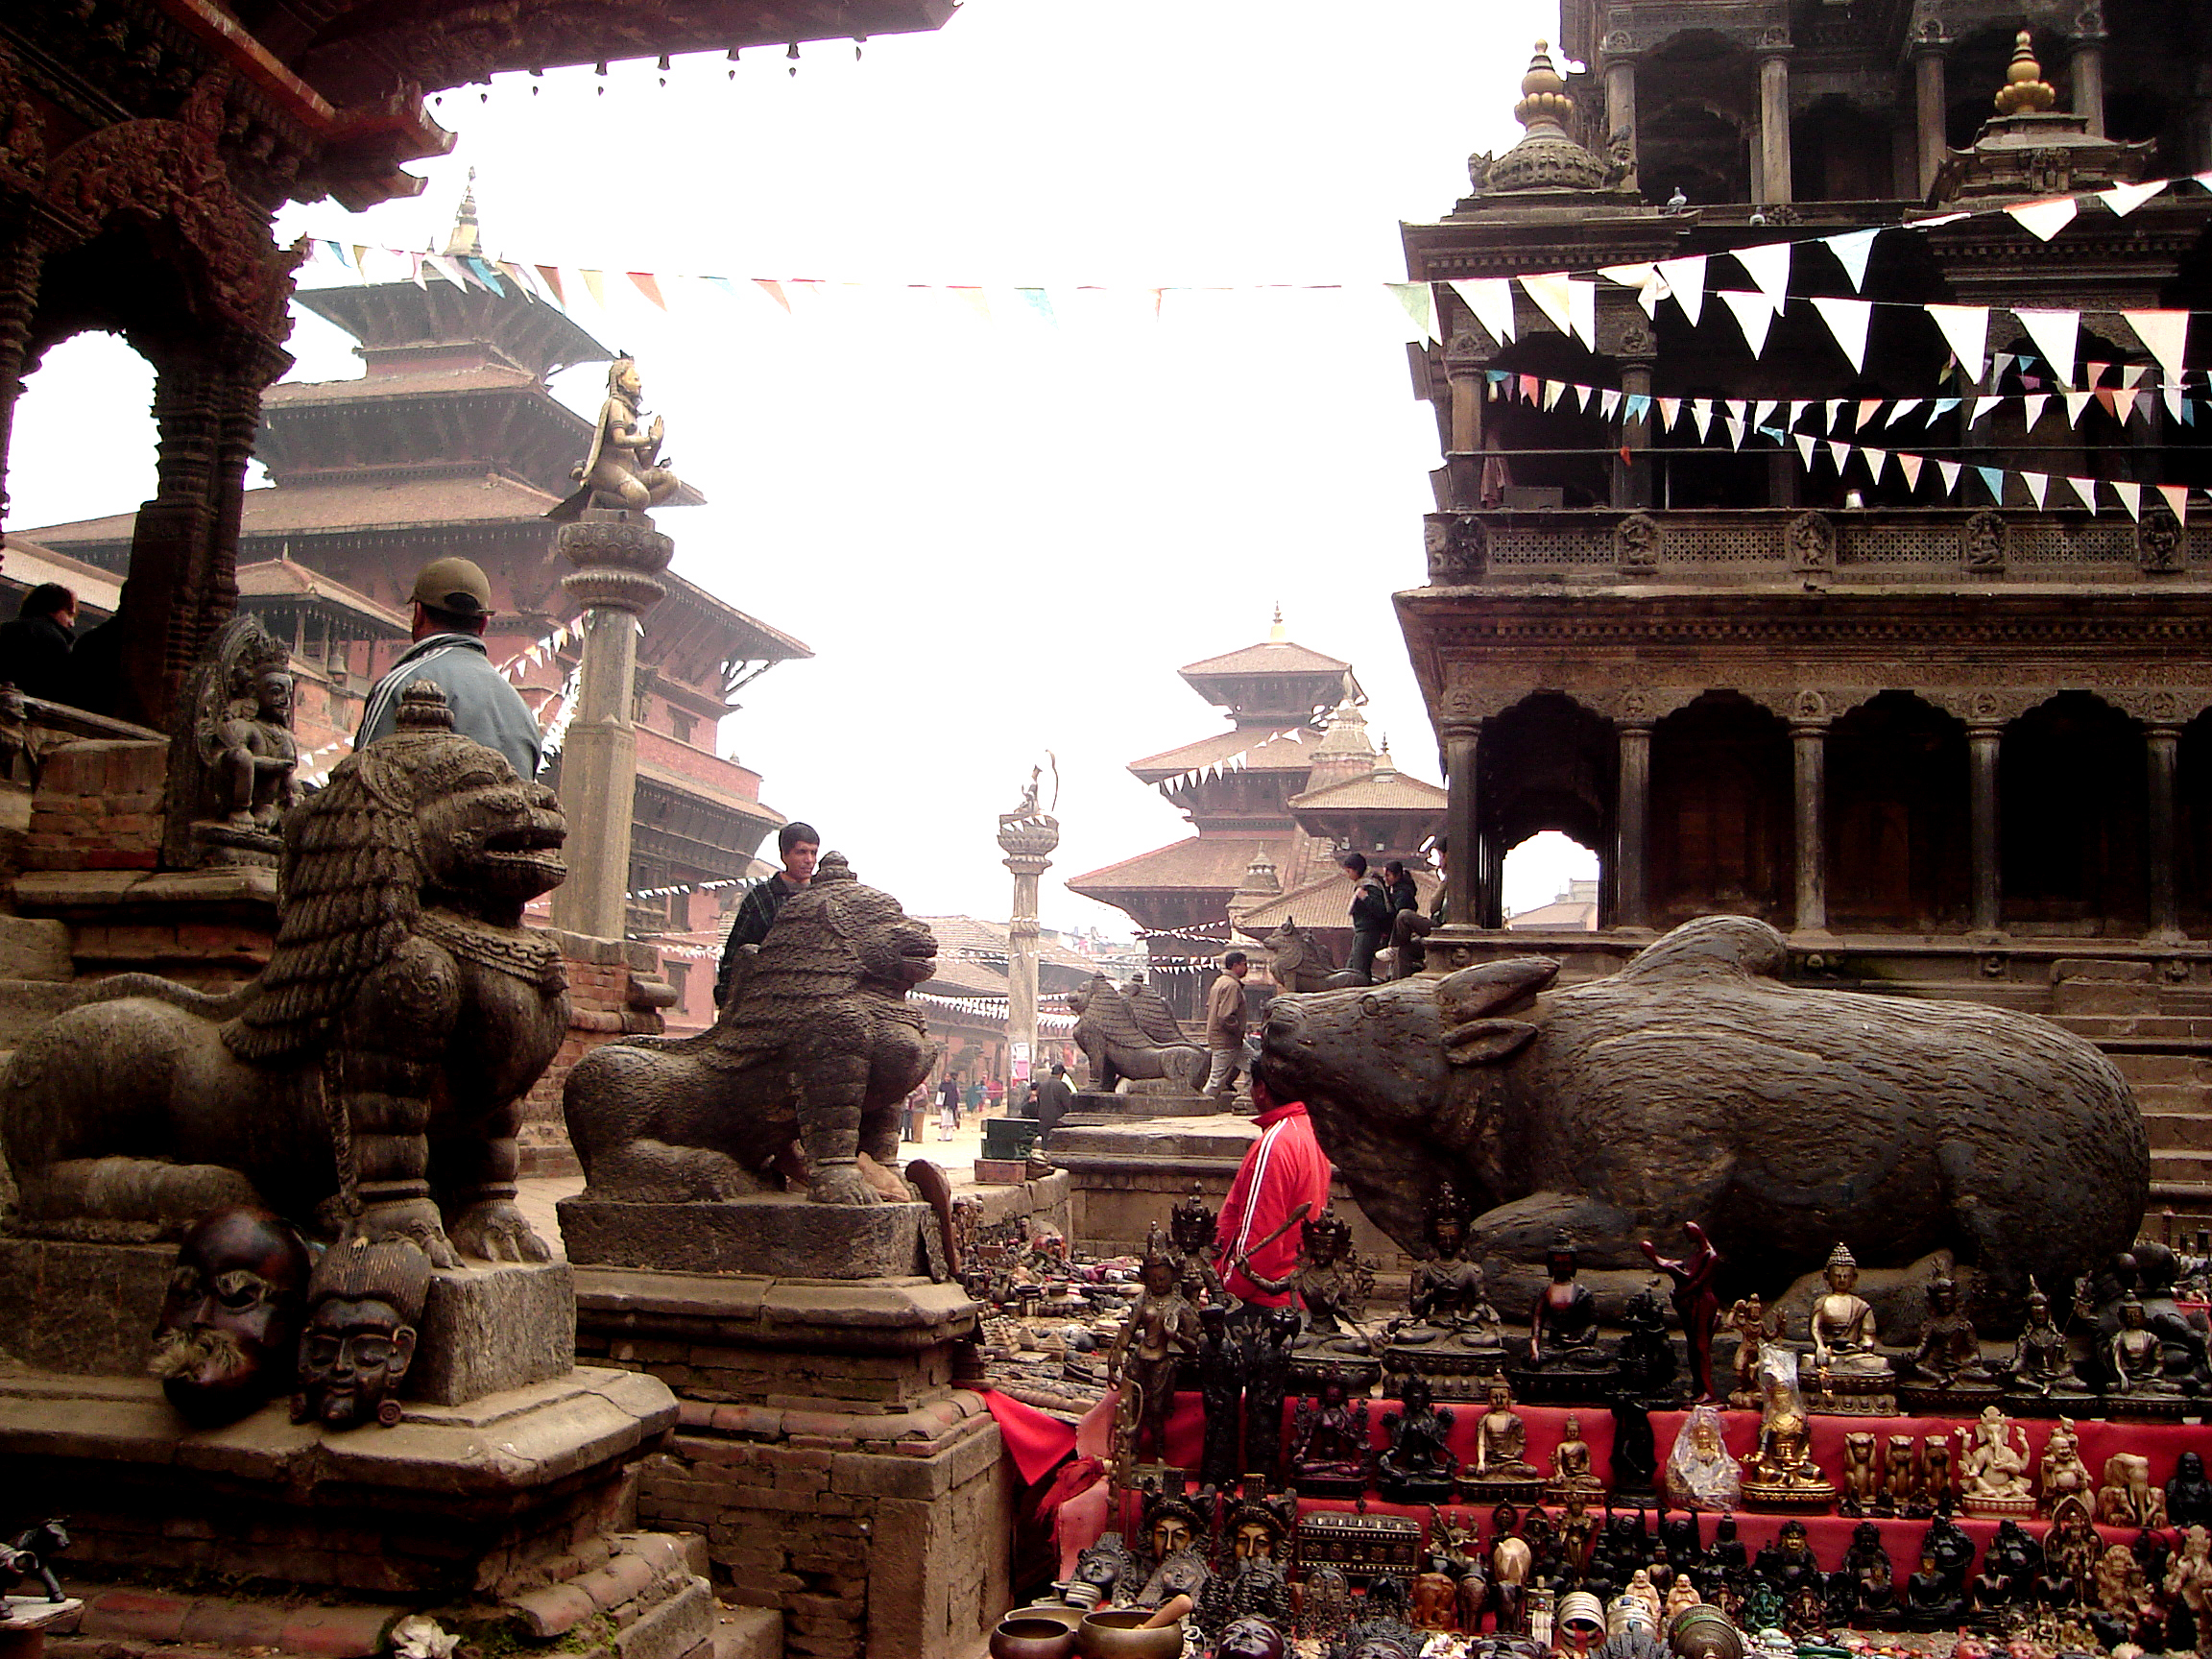 TIBETAN TEMPLE LIONS IN EXOTIC PATAN